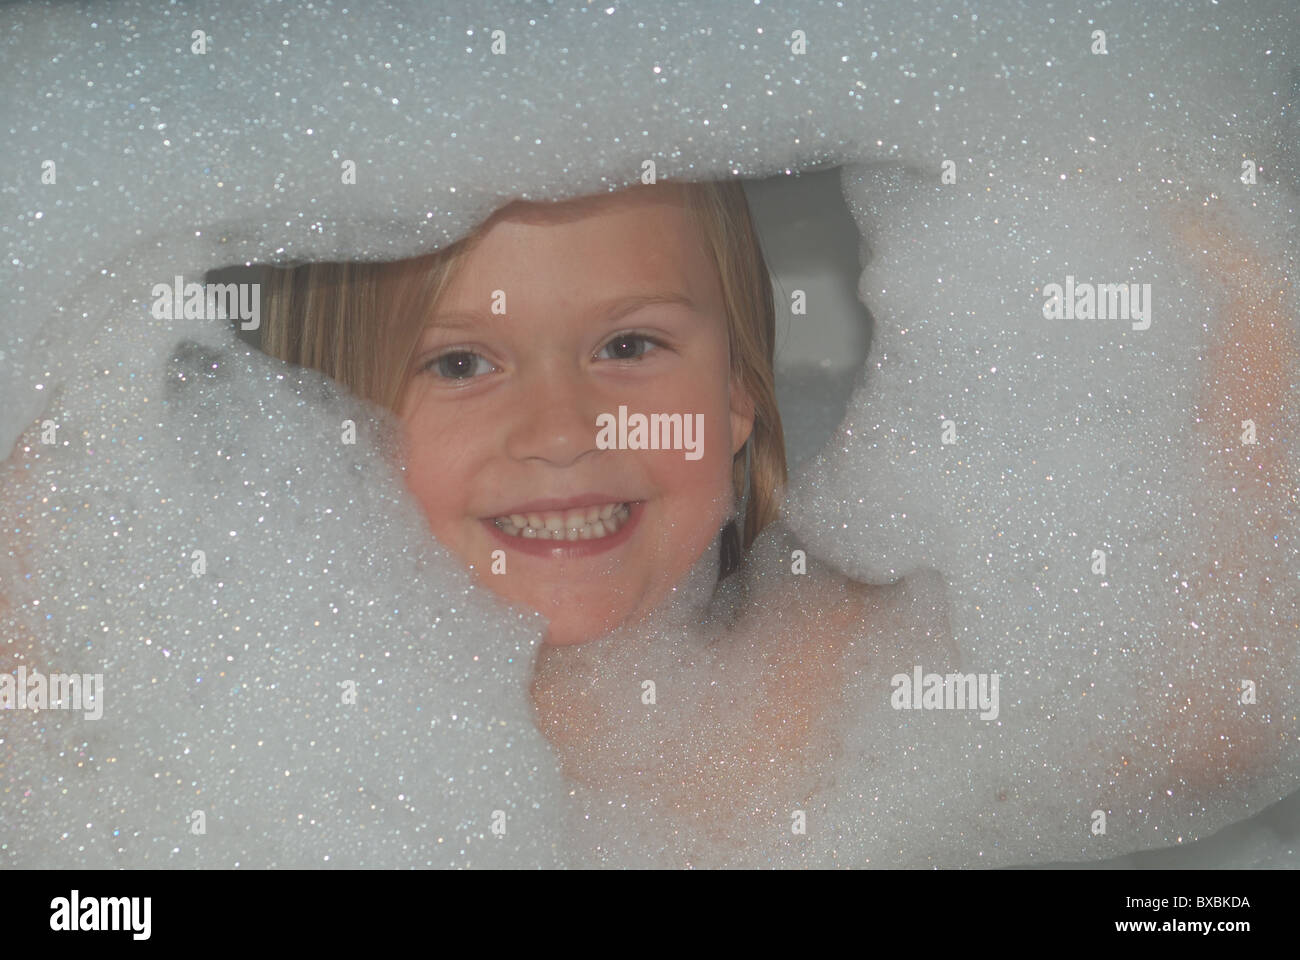 Breast indon young teen girls in bubble bath girls with